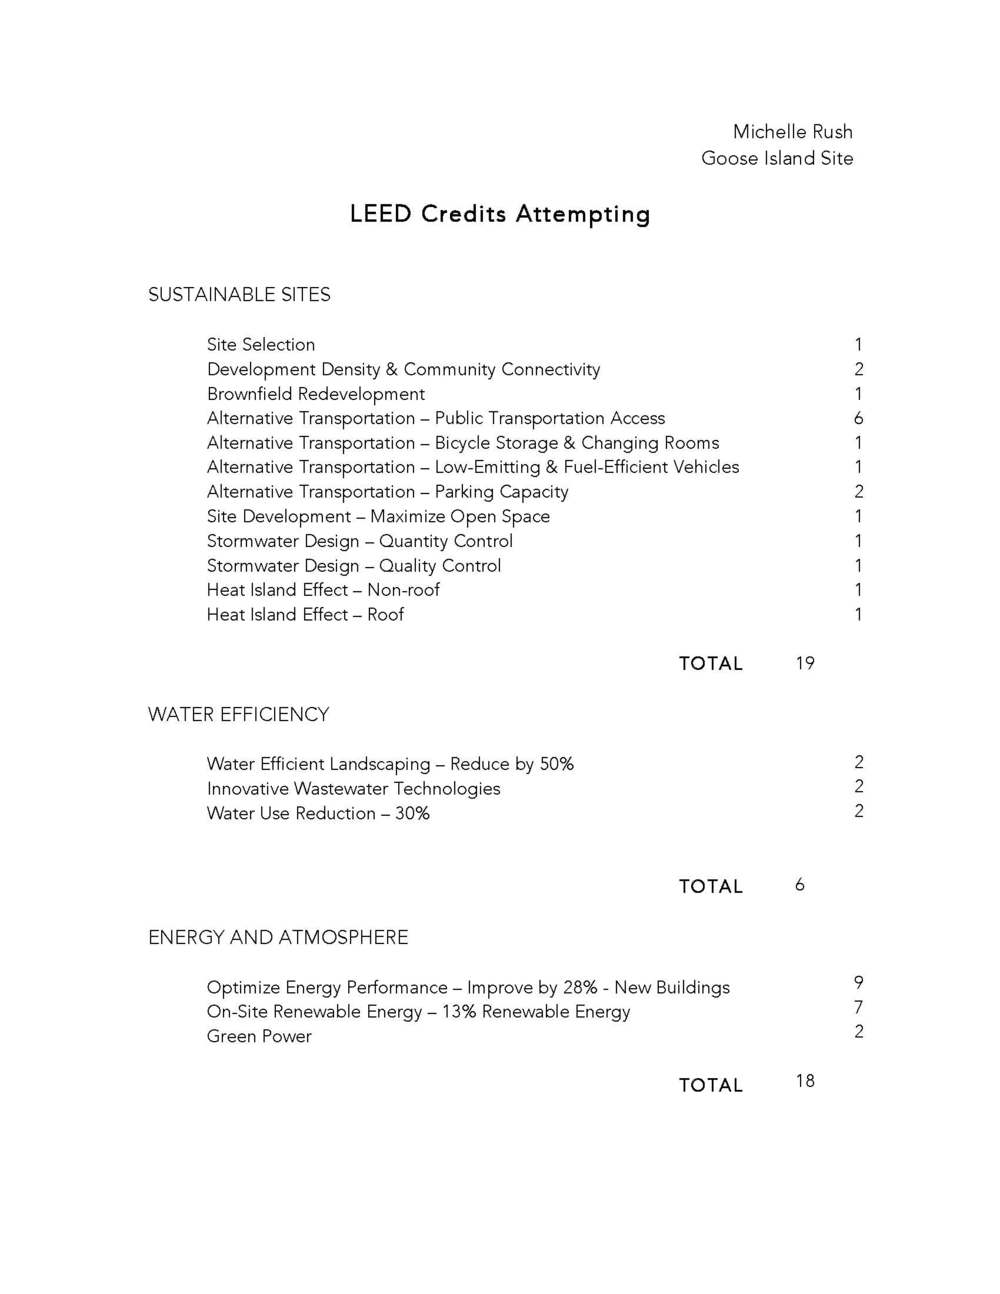 LEED Credits Attempting_Page_1.jpg